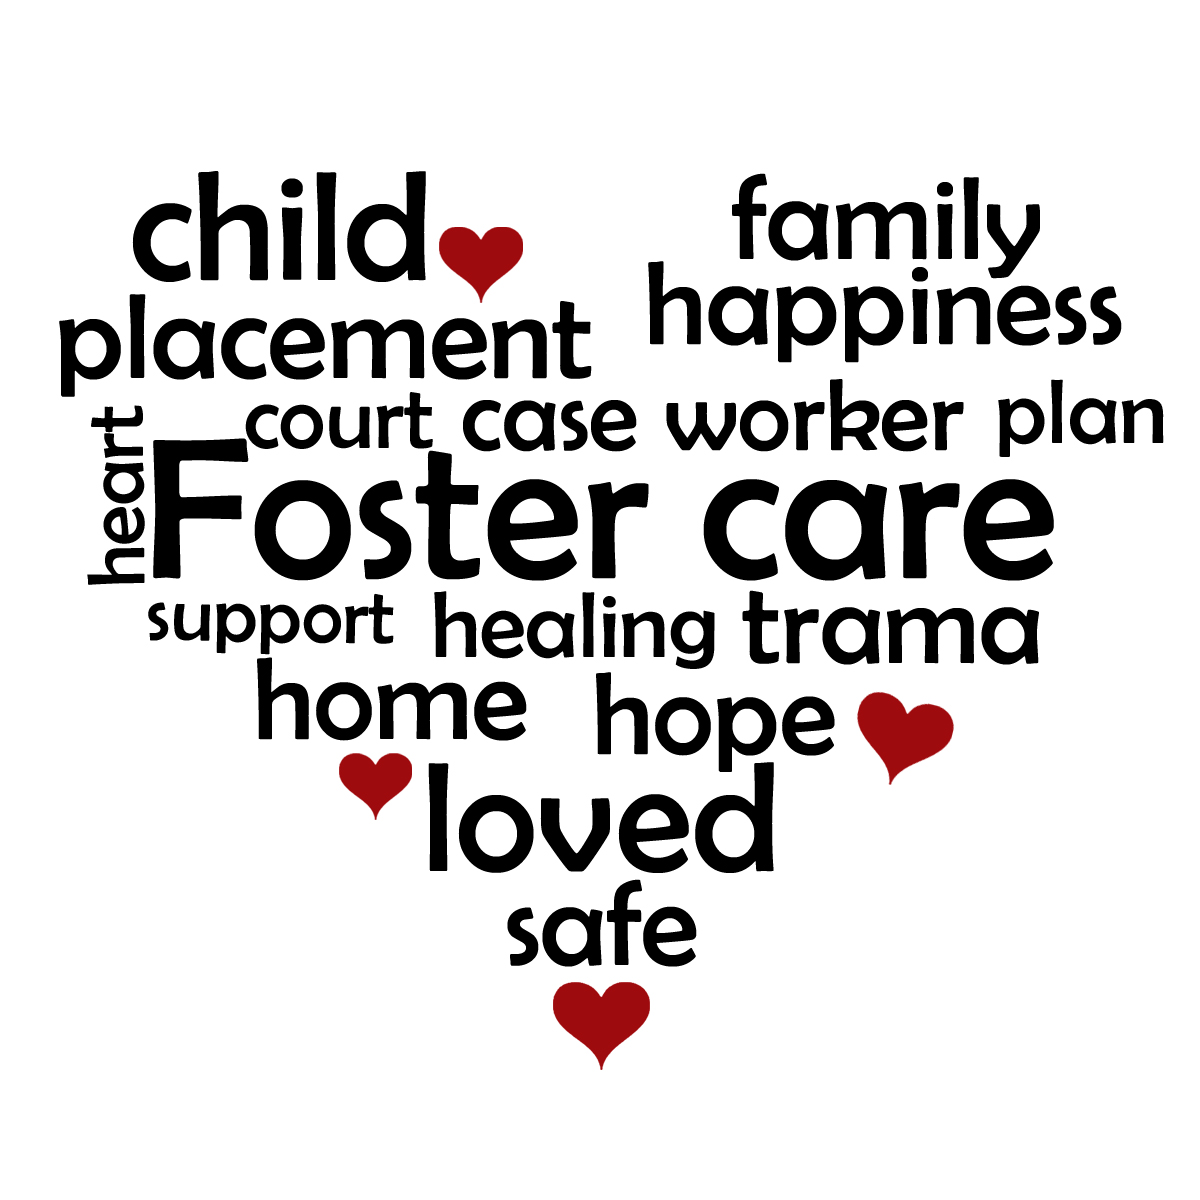 Caring clipart foster care. Top reasons why you